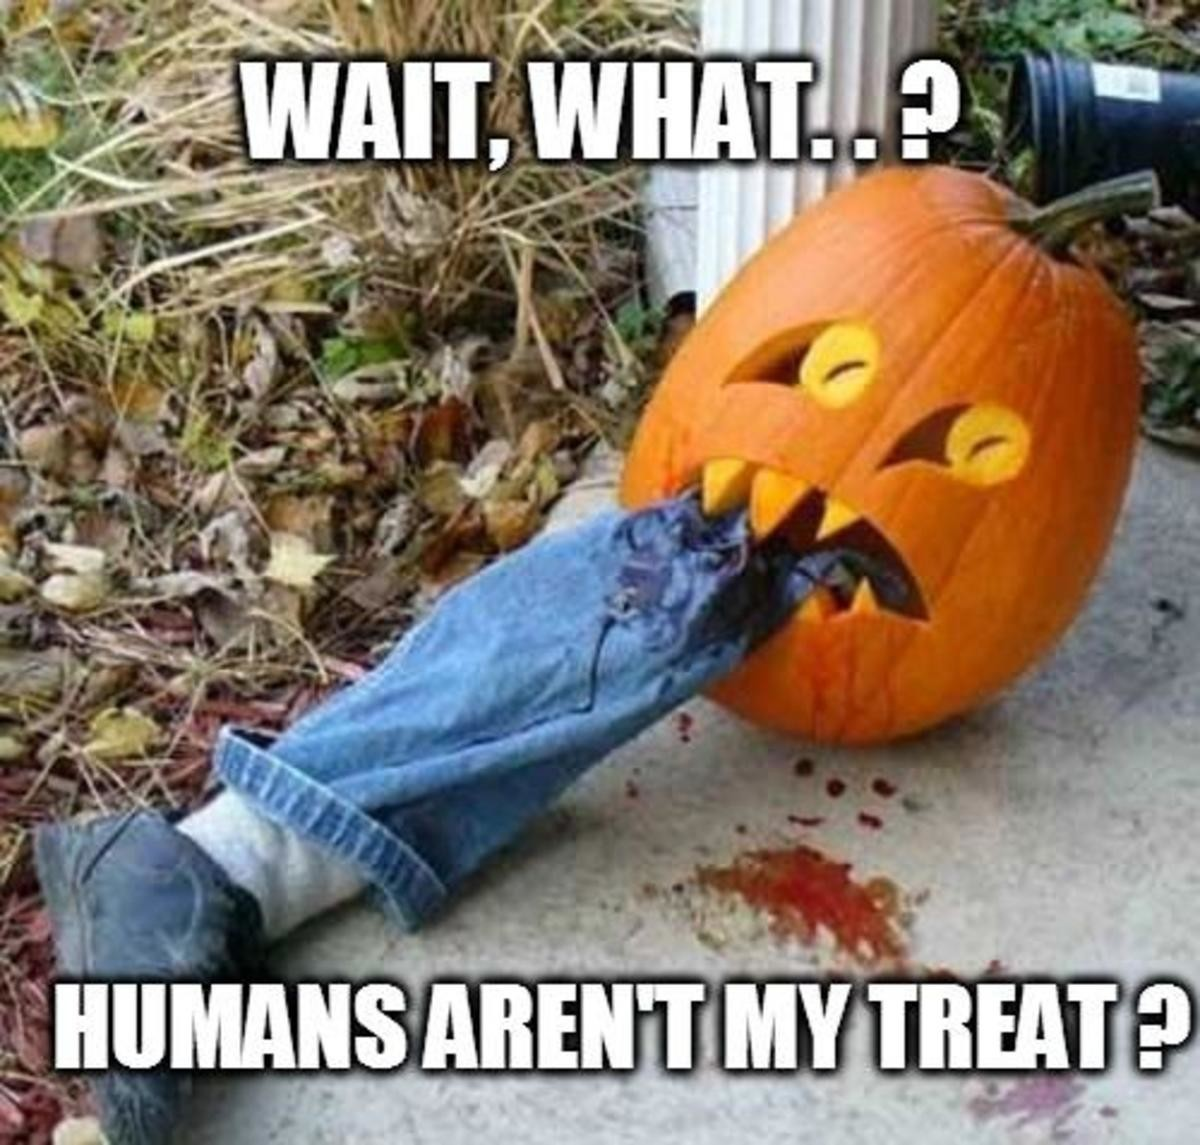 Trick or Treat!. .. Why does the caption make this less funny?